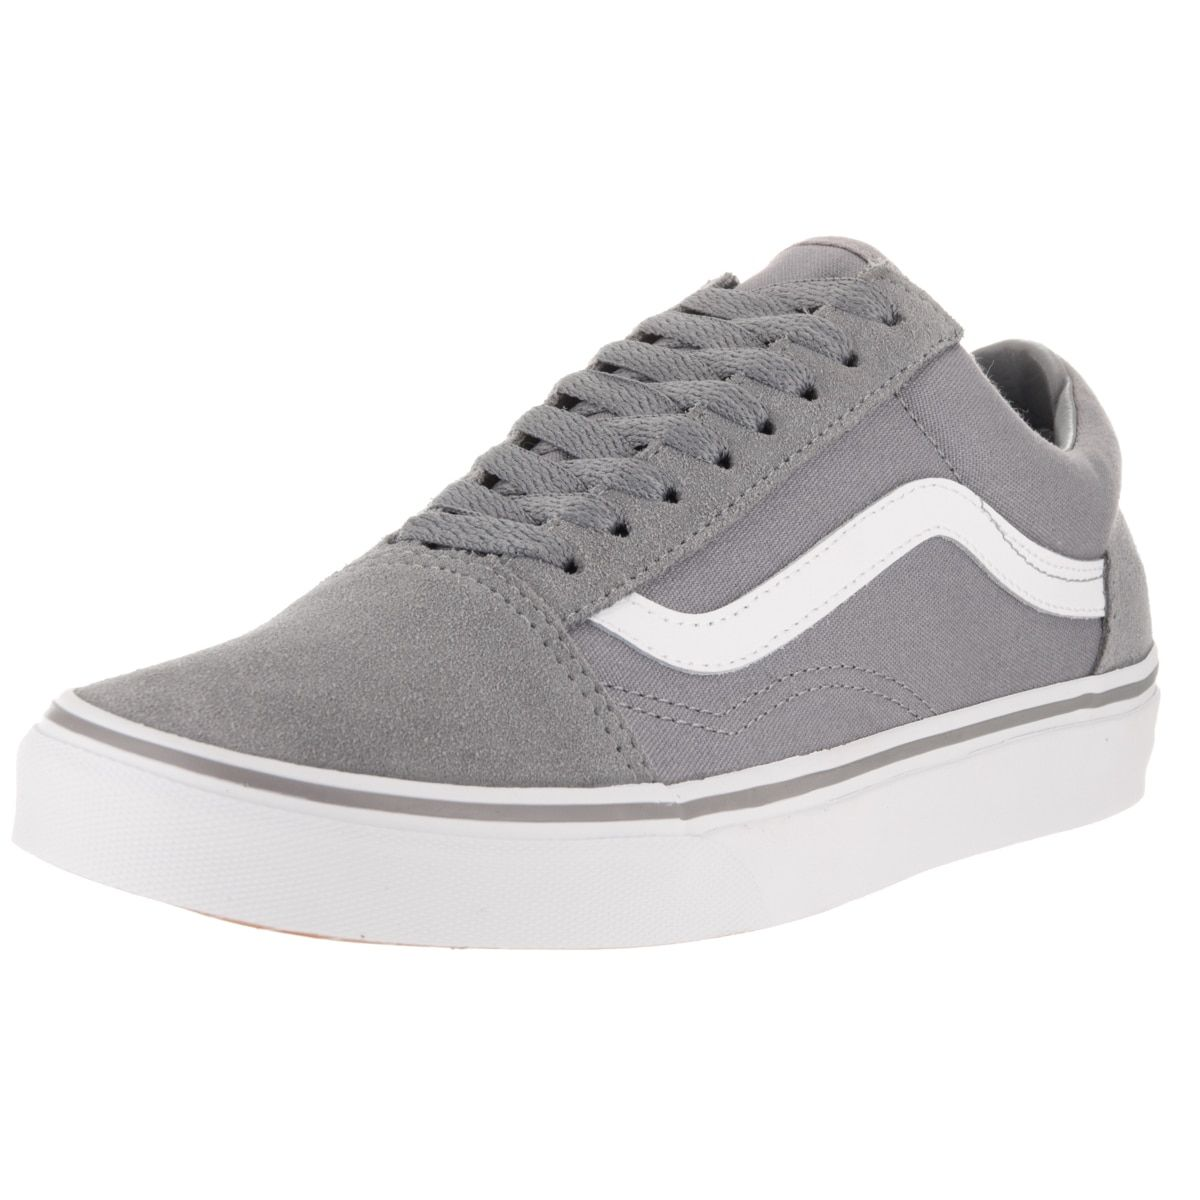 5107747e5d Vans Old Skool Grey and White Suede and Canvas Skate Shoe